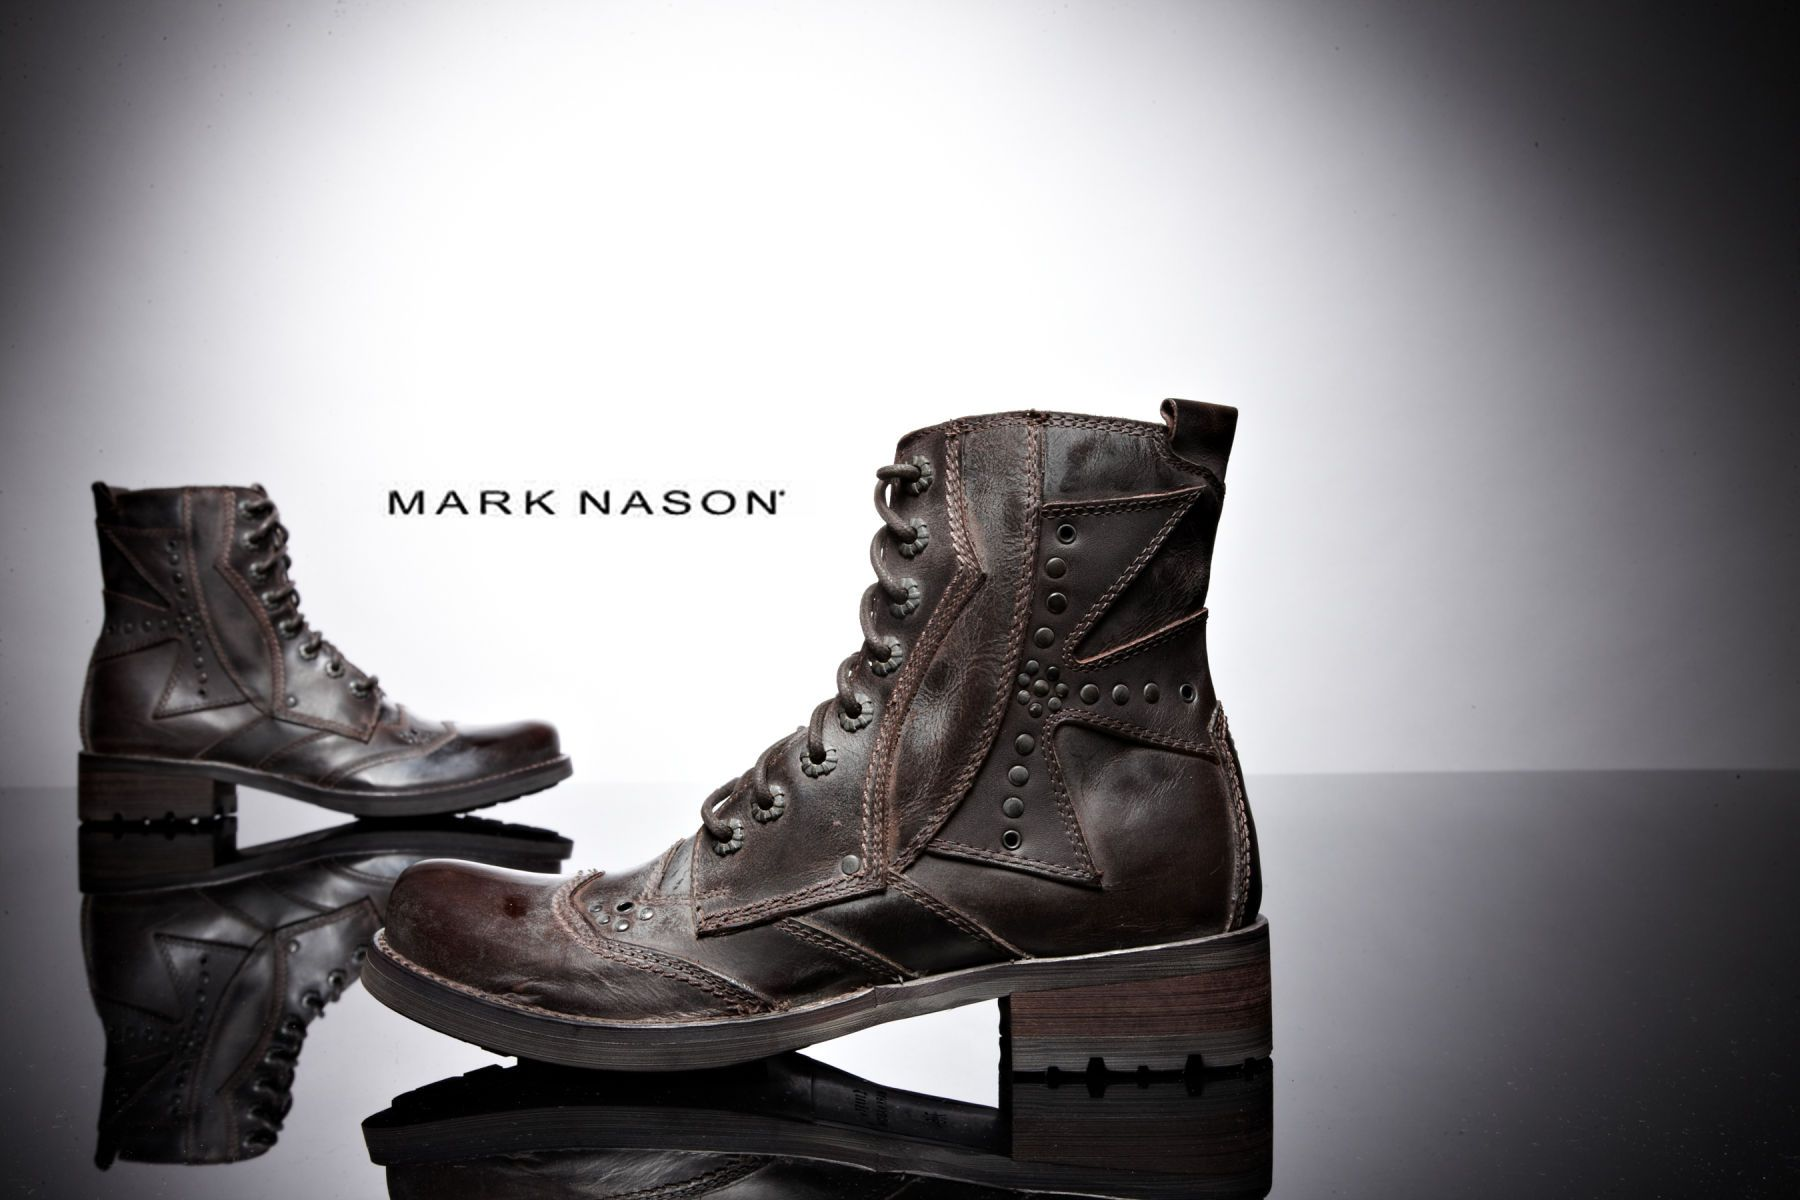 1r110413_shoe_marknason_s03_0040_edit.jpg